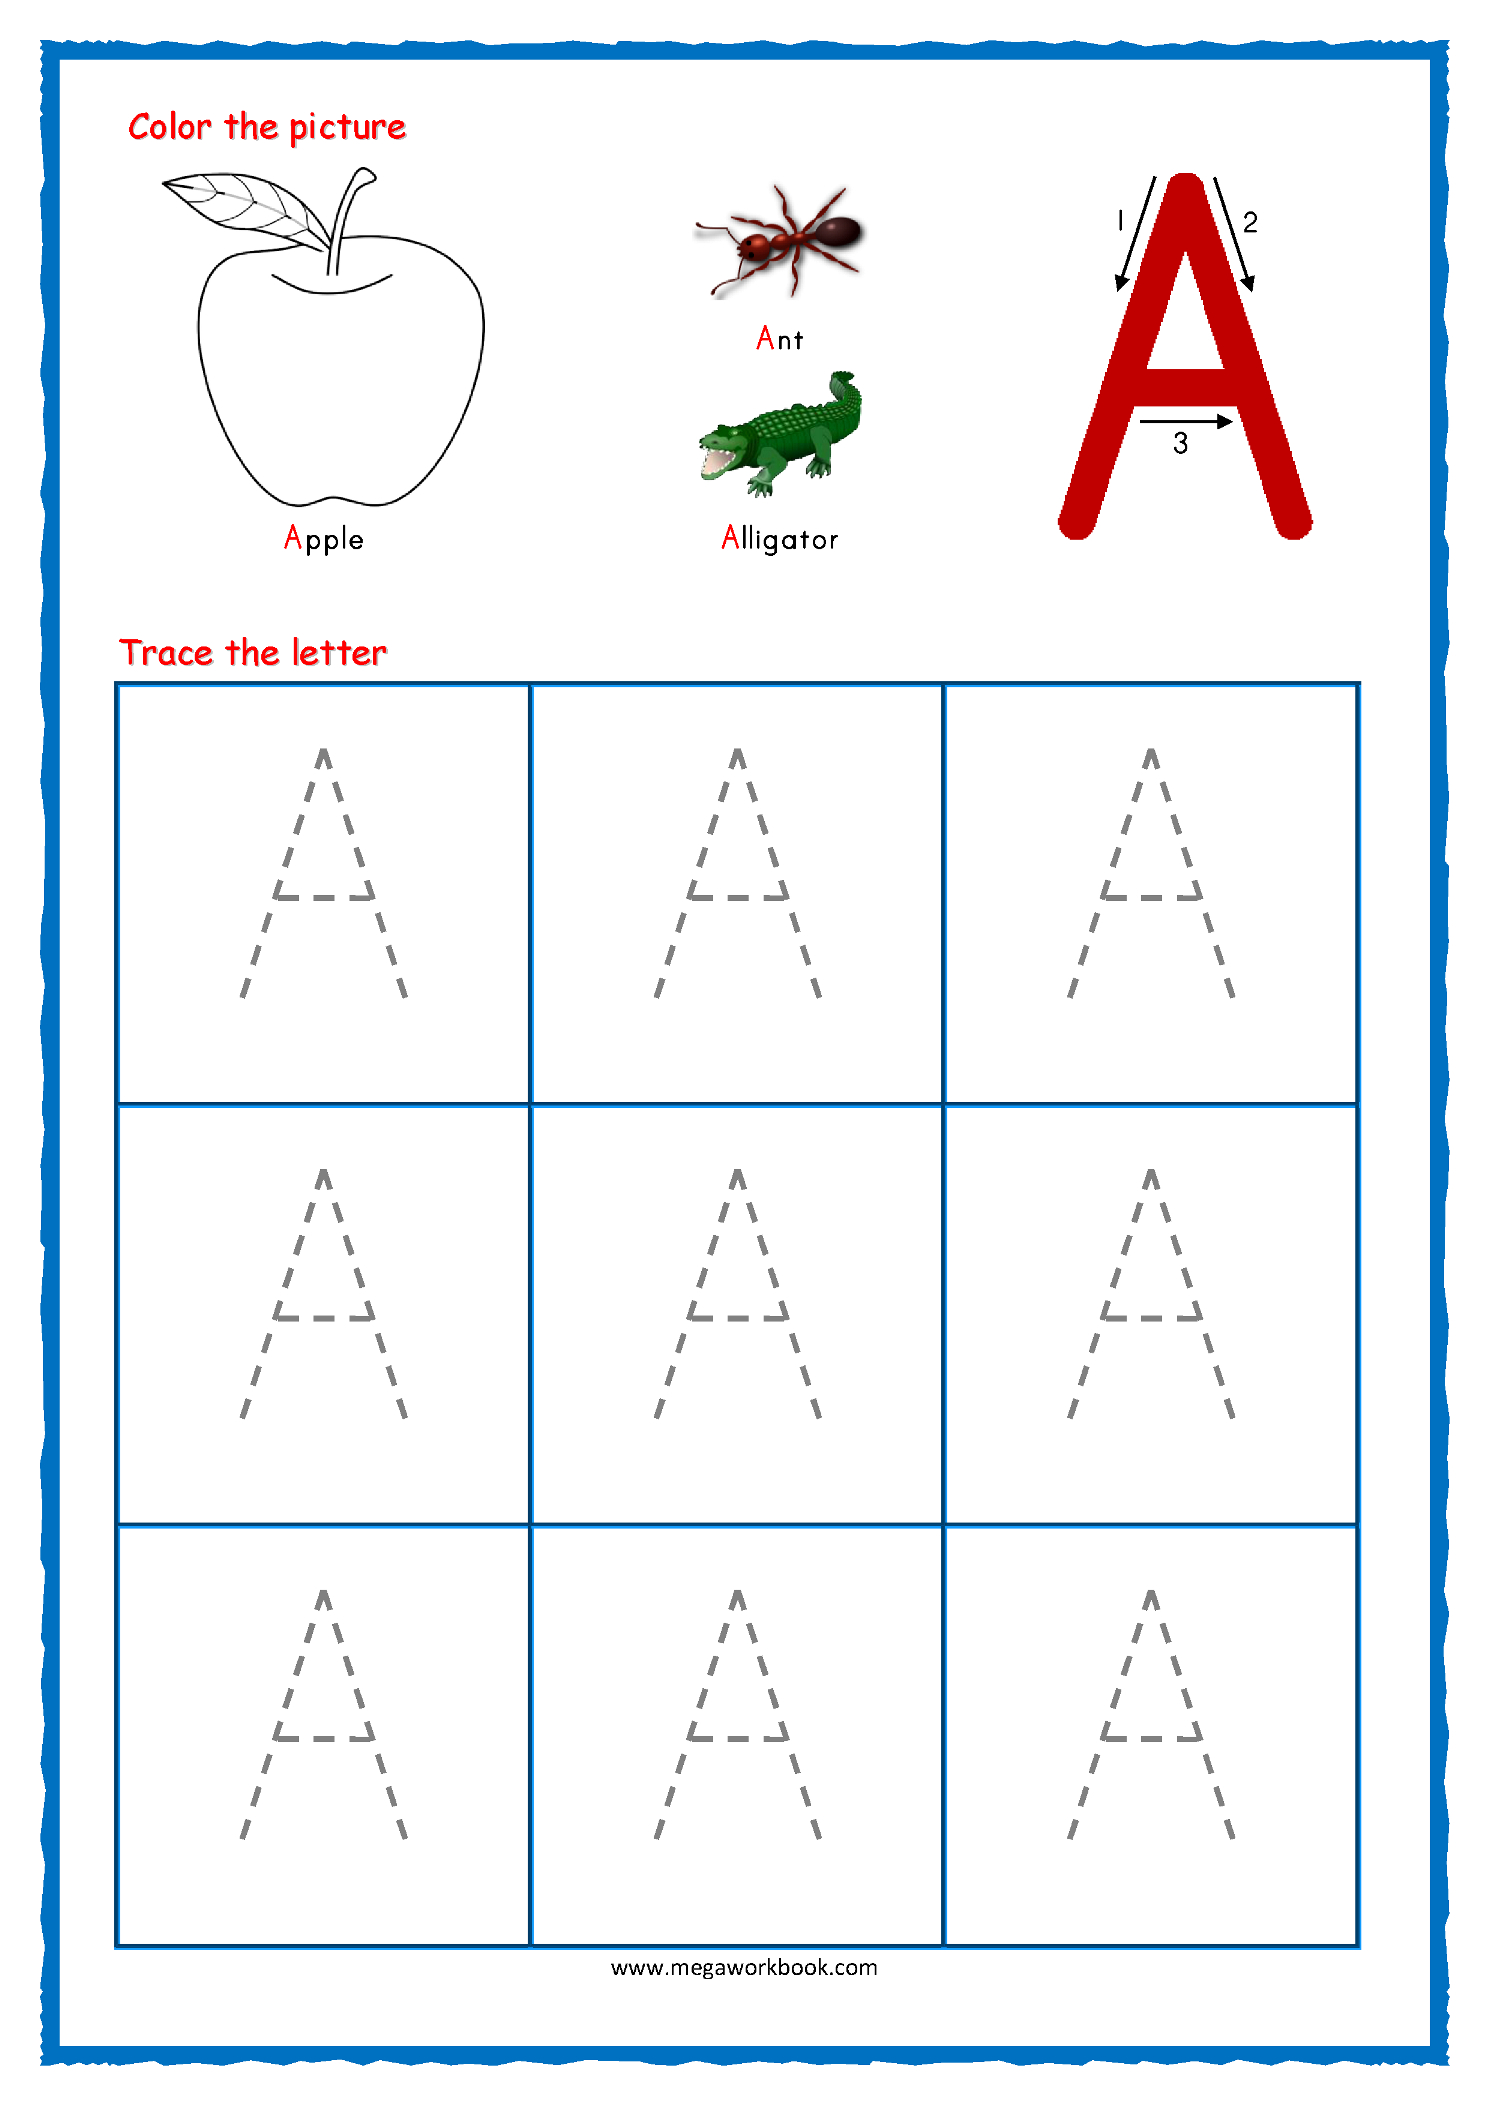 Tracing Letters - Alphabet Tracing - Capital Letters within Tracing English Letters